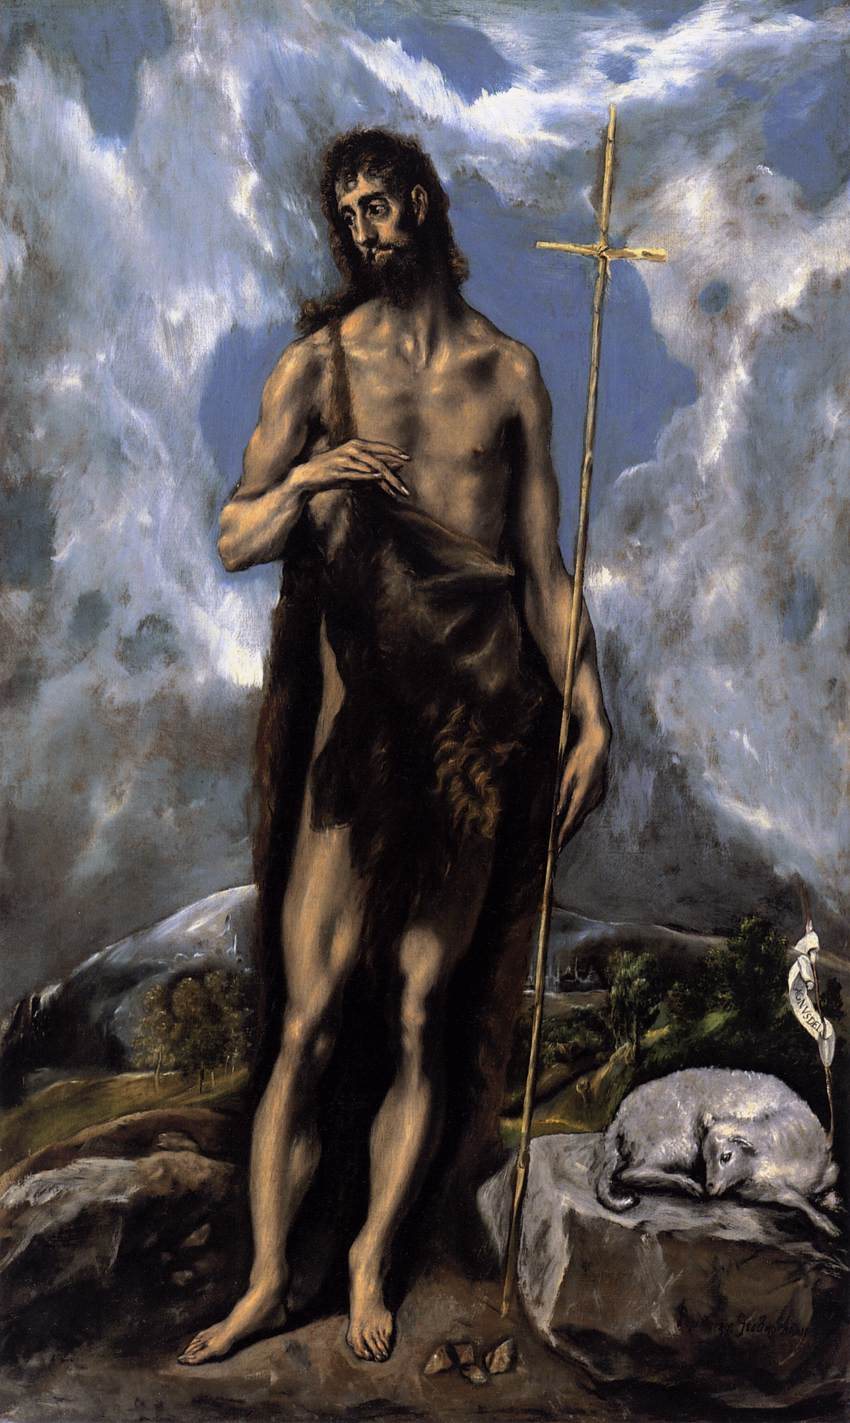 St. John the Baptist